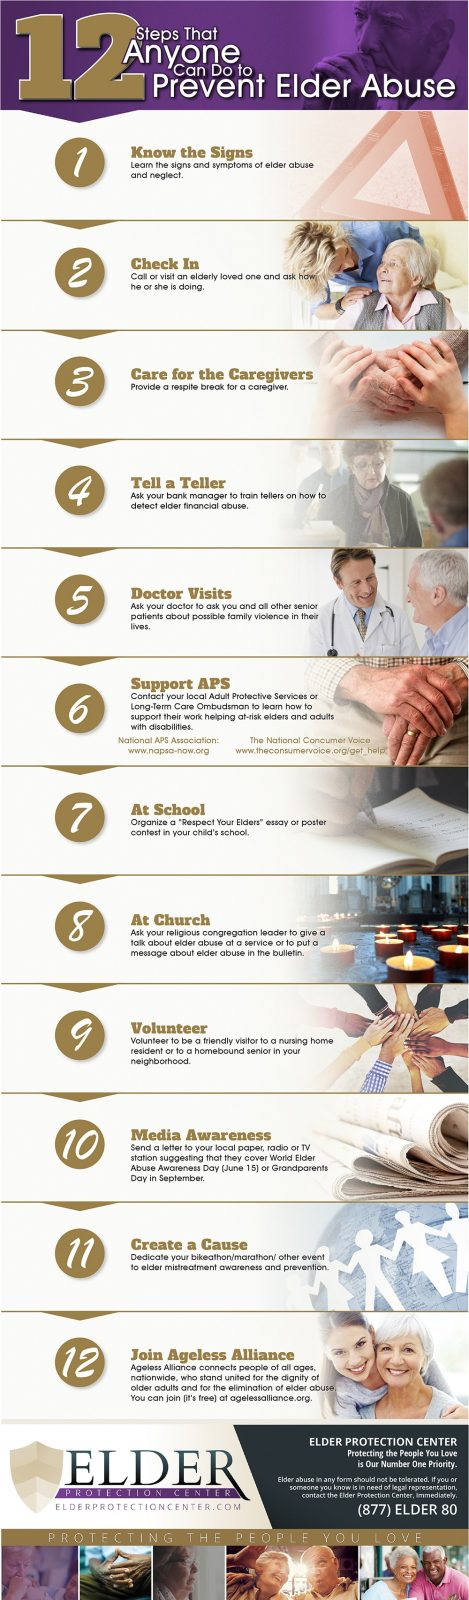 12 Steps that Anyone Can Do to Prevent Elder Abuse